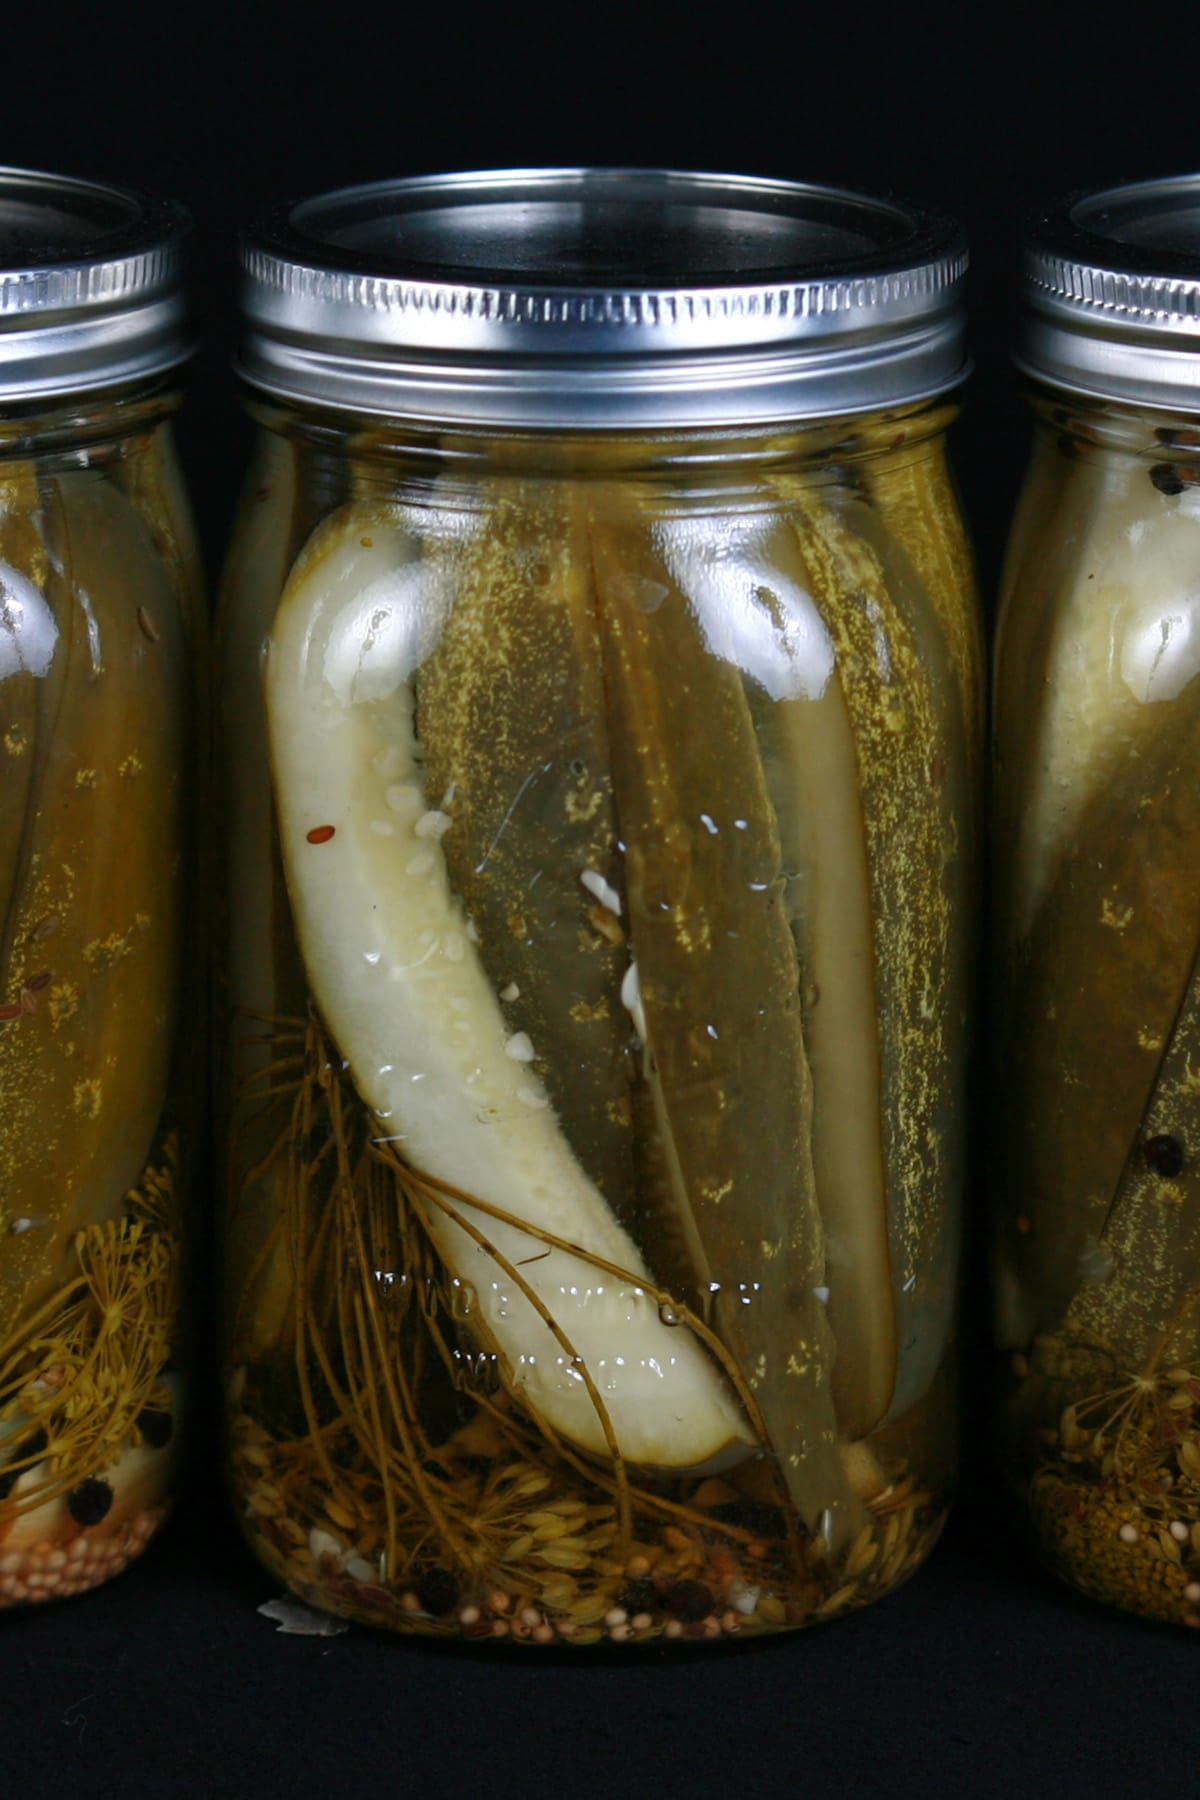 3 large jars of homemade dill pickles.